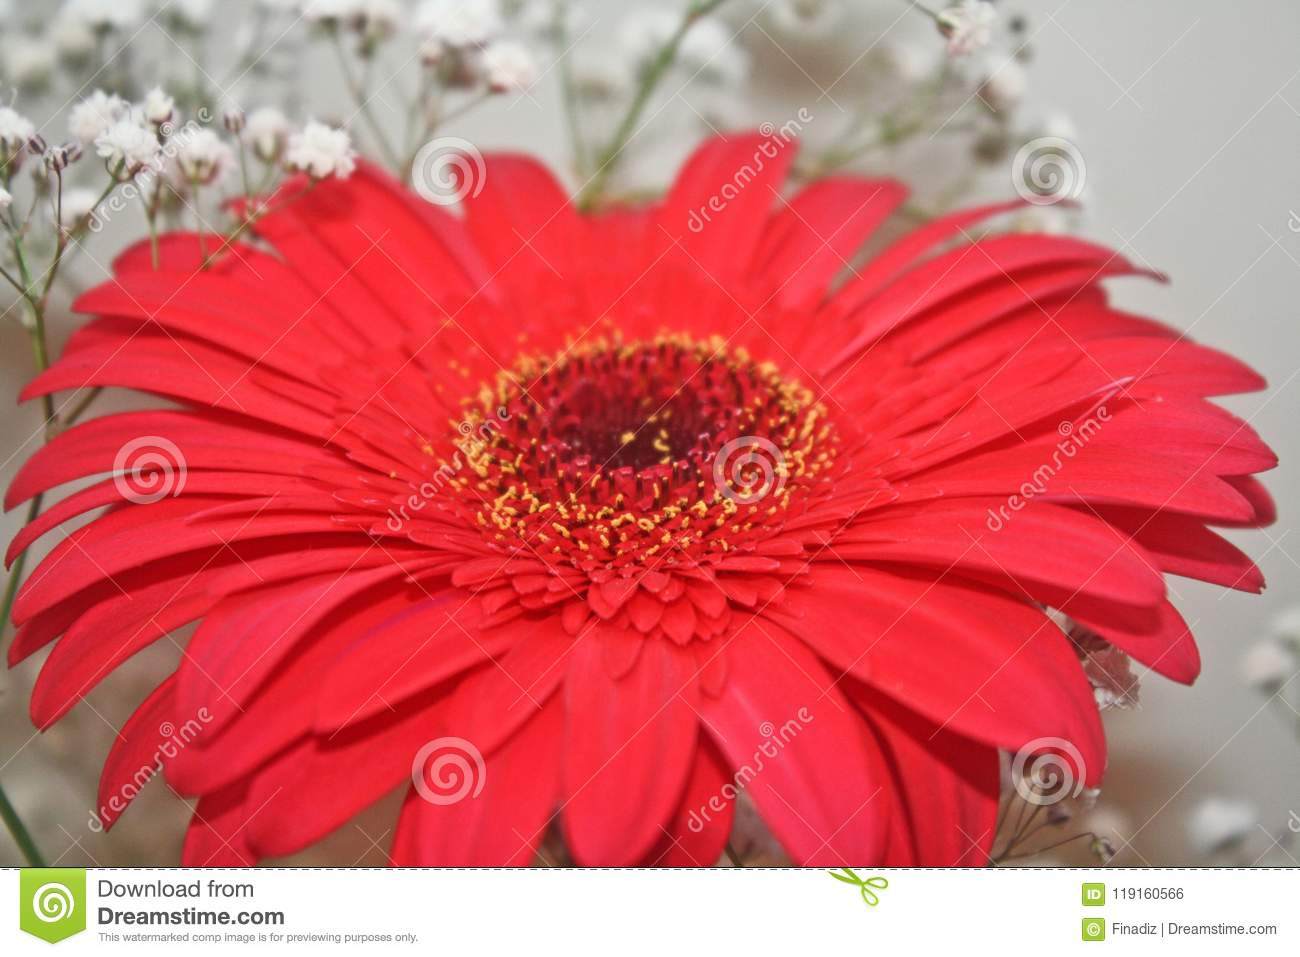 Flowers and colors beautiful red daisy stock photo image of flowers and colors beautiful red daisy izmirmasajfo